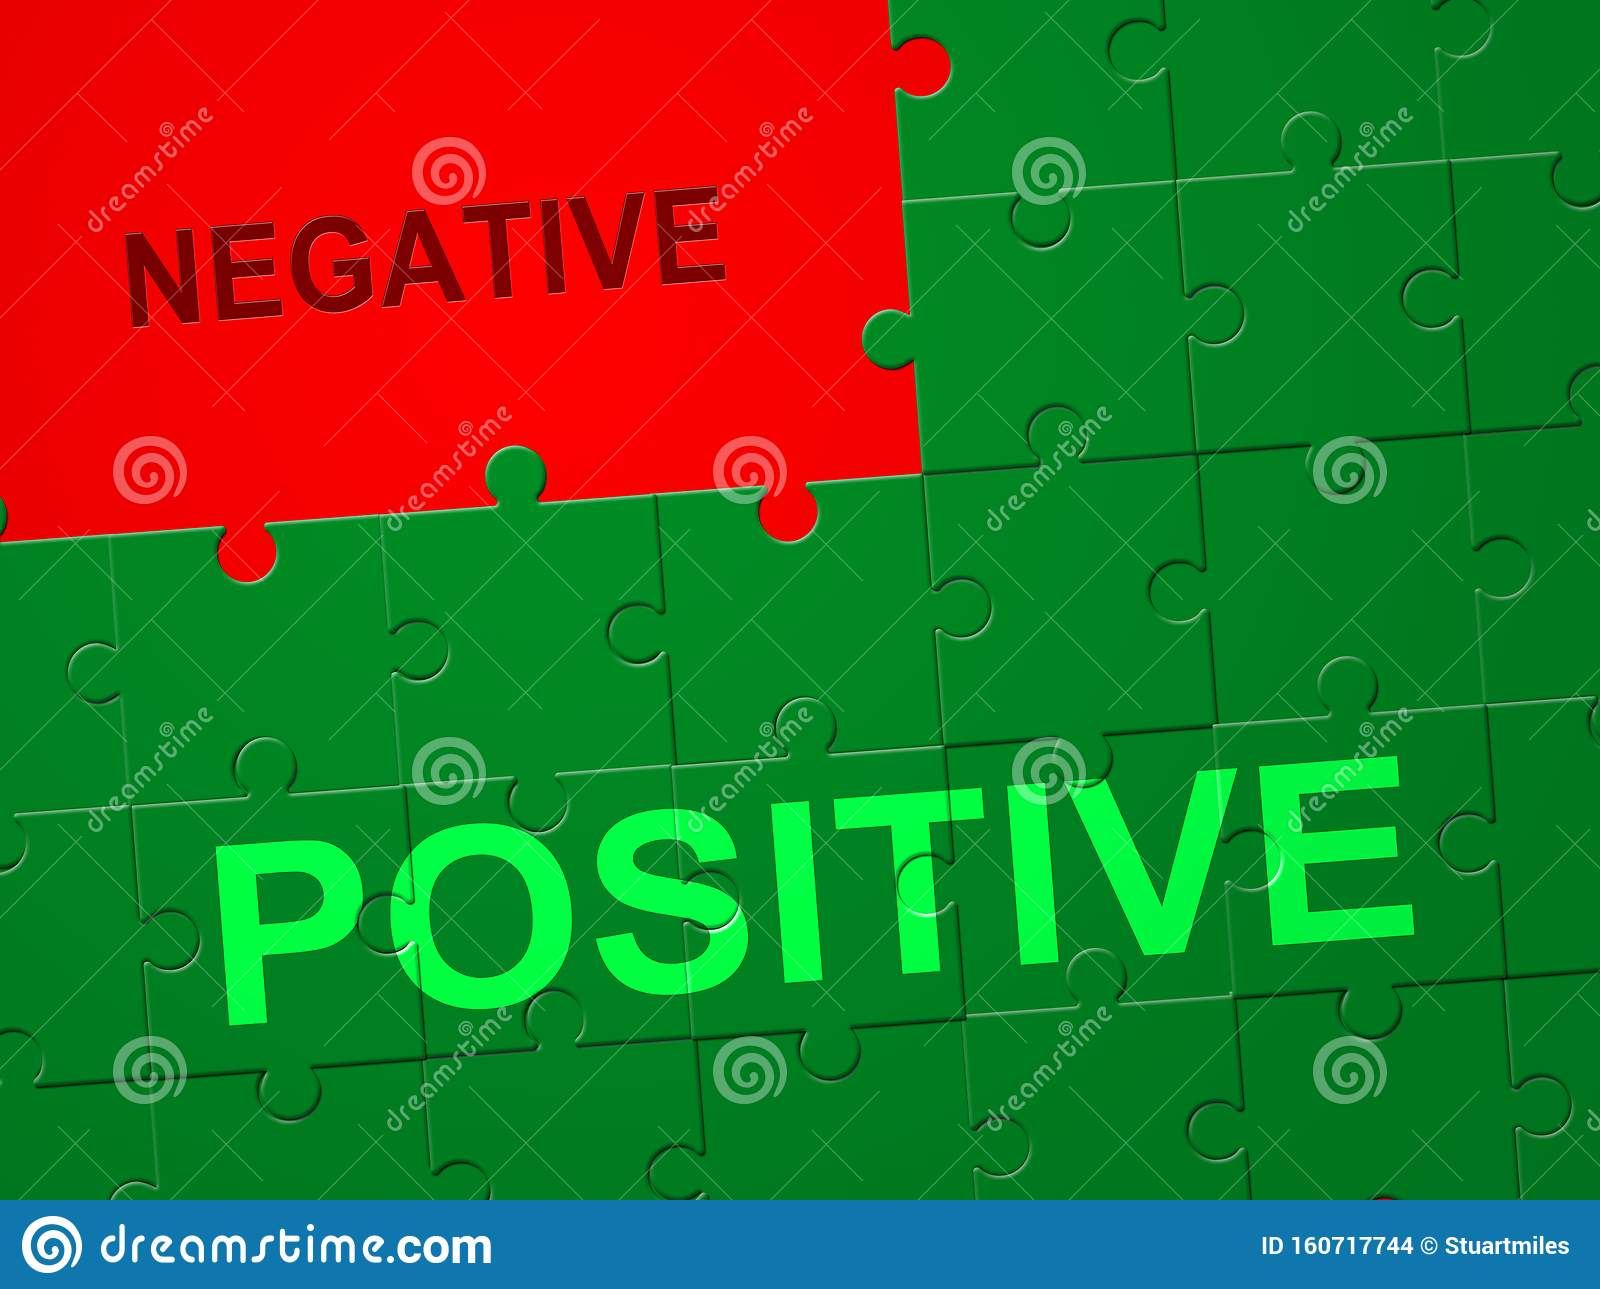 Positive Versus Negative Jigsaw Depicting Reflective State